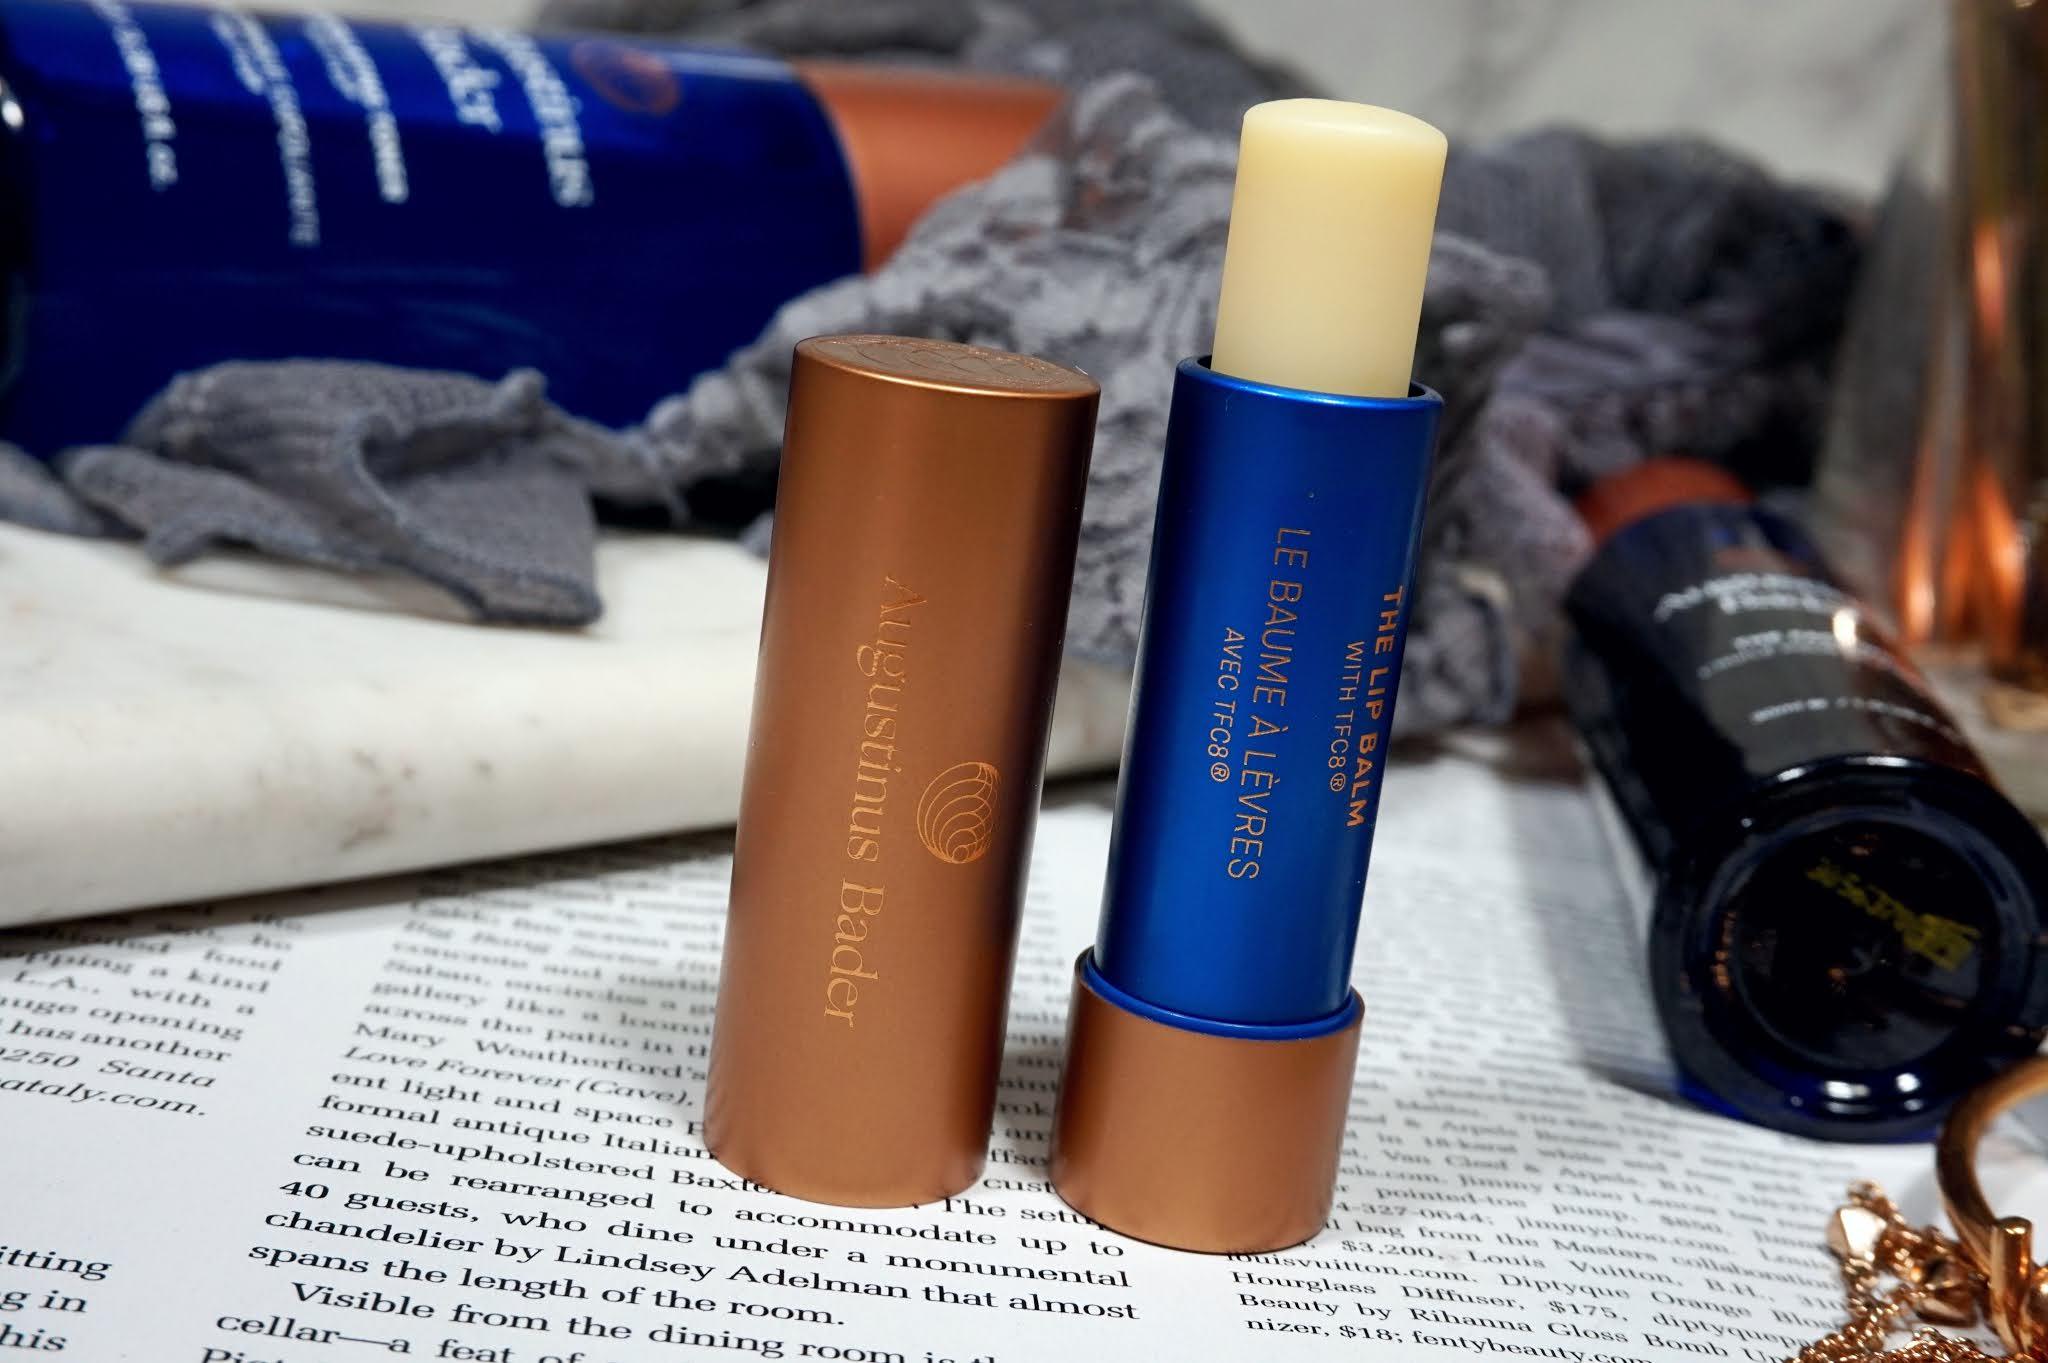 Augustinus Bader The Lip Balm Review